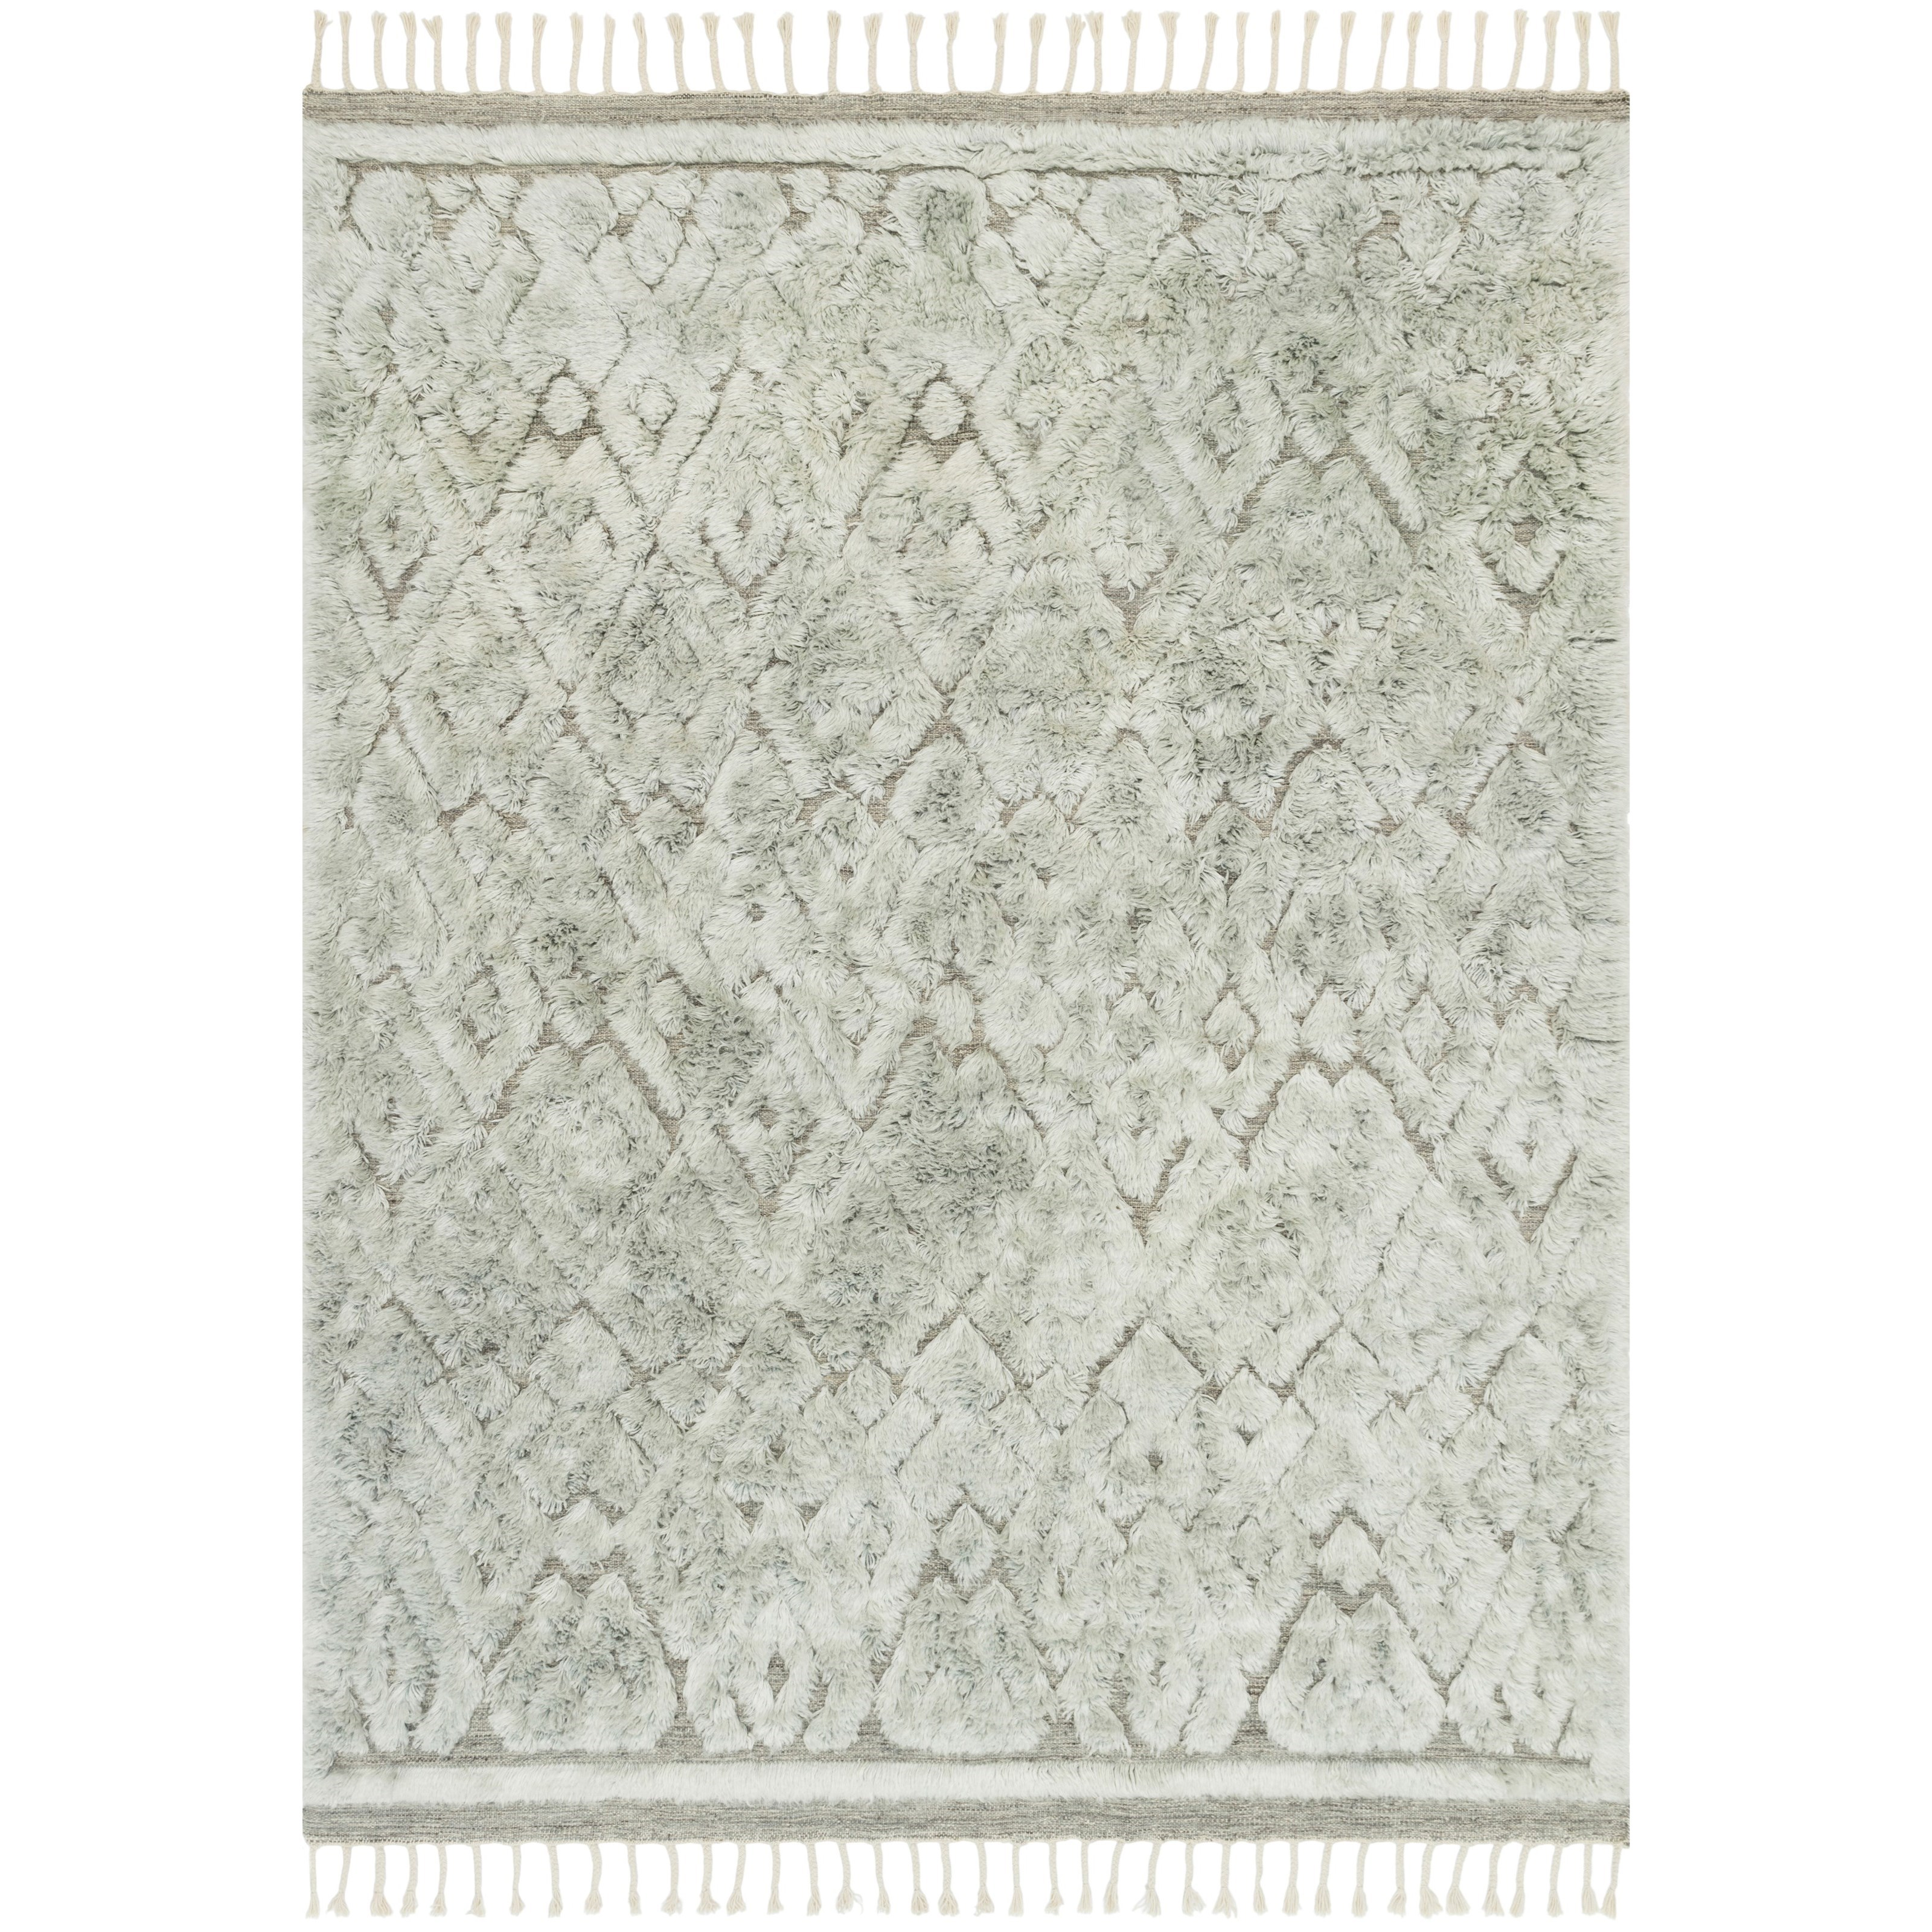 """Hygge 2'0"""" x 3'0"""" Grey / Mist Rug by Loloi Rugs at Virginia Furniture Market"""